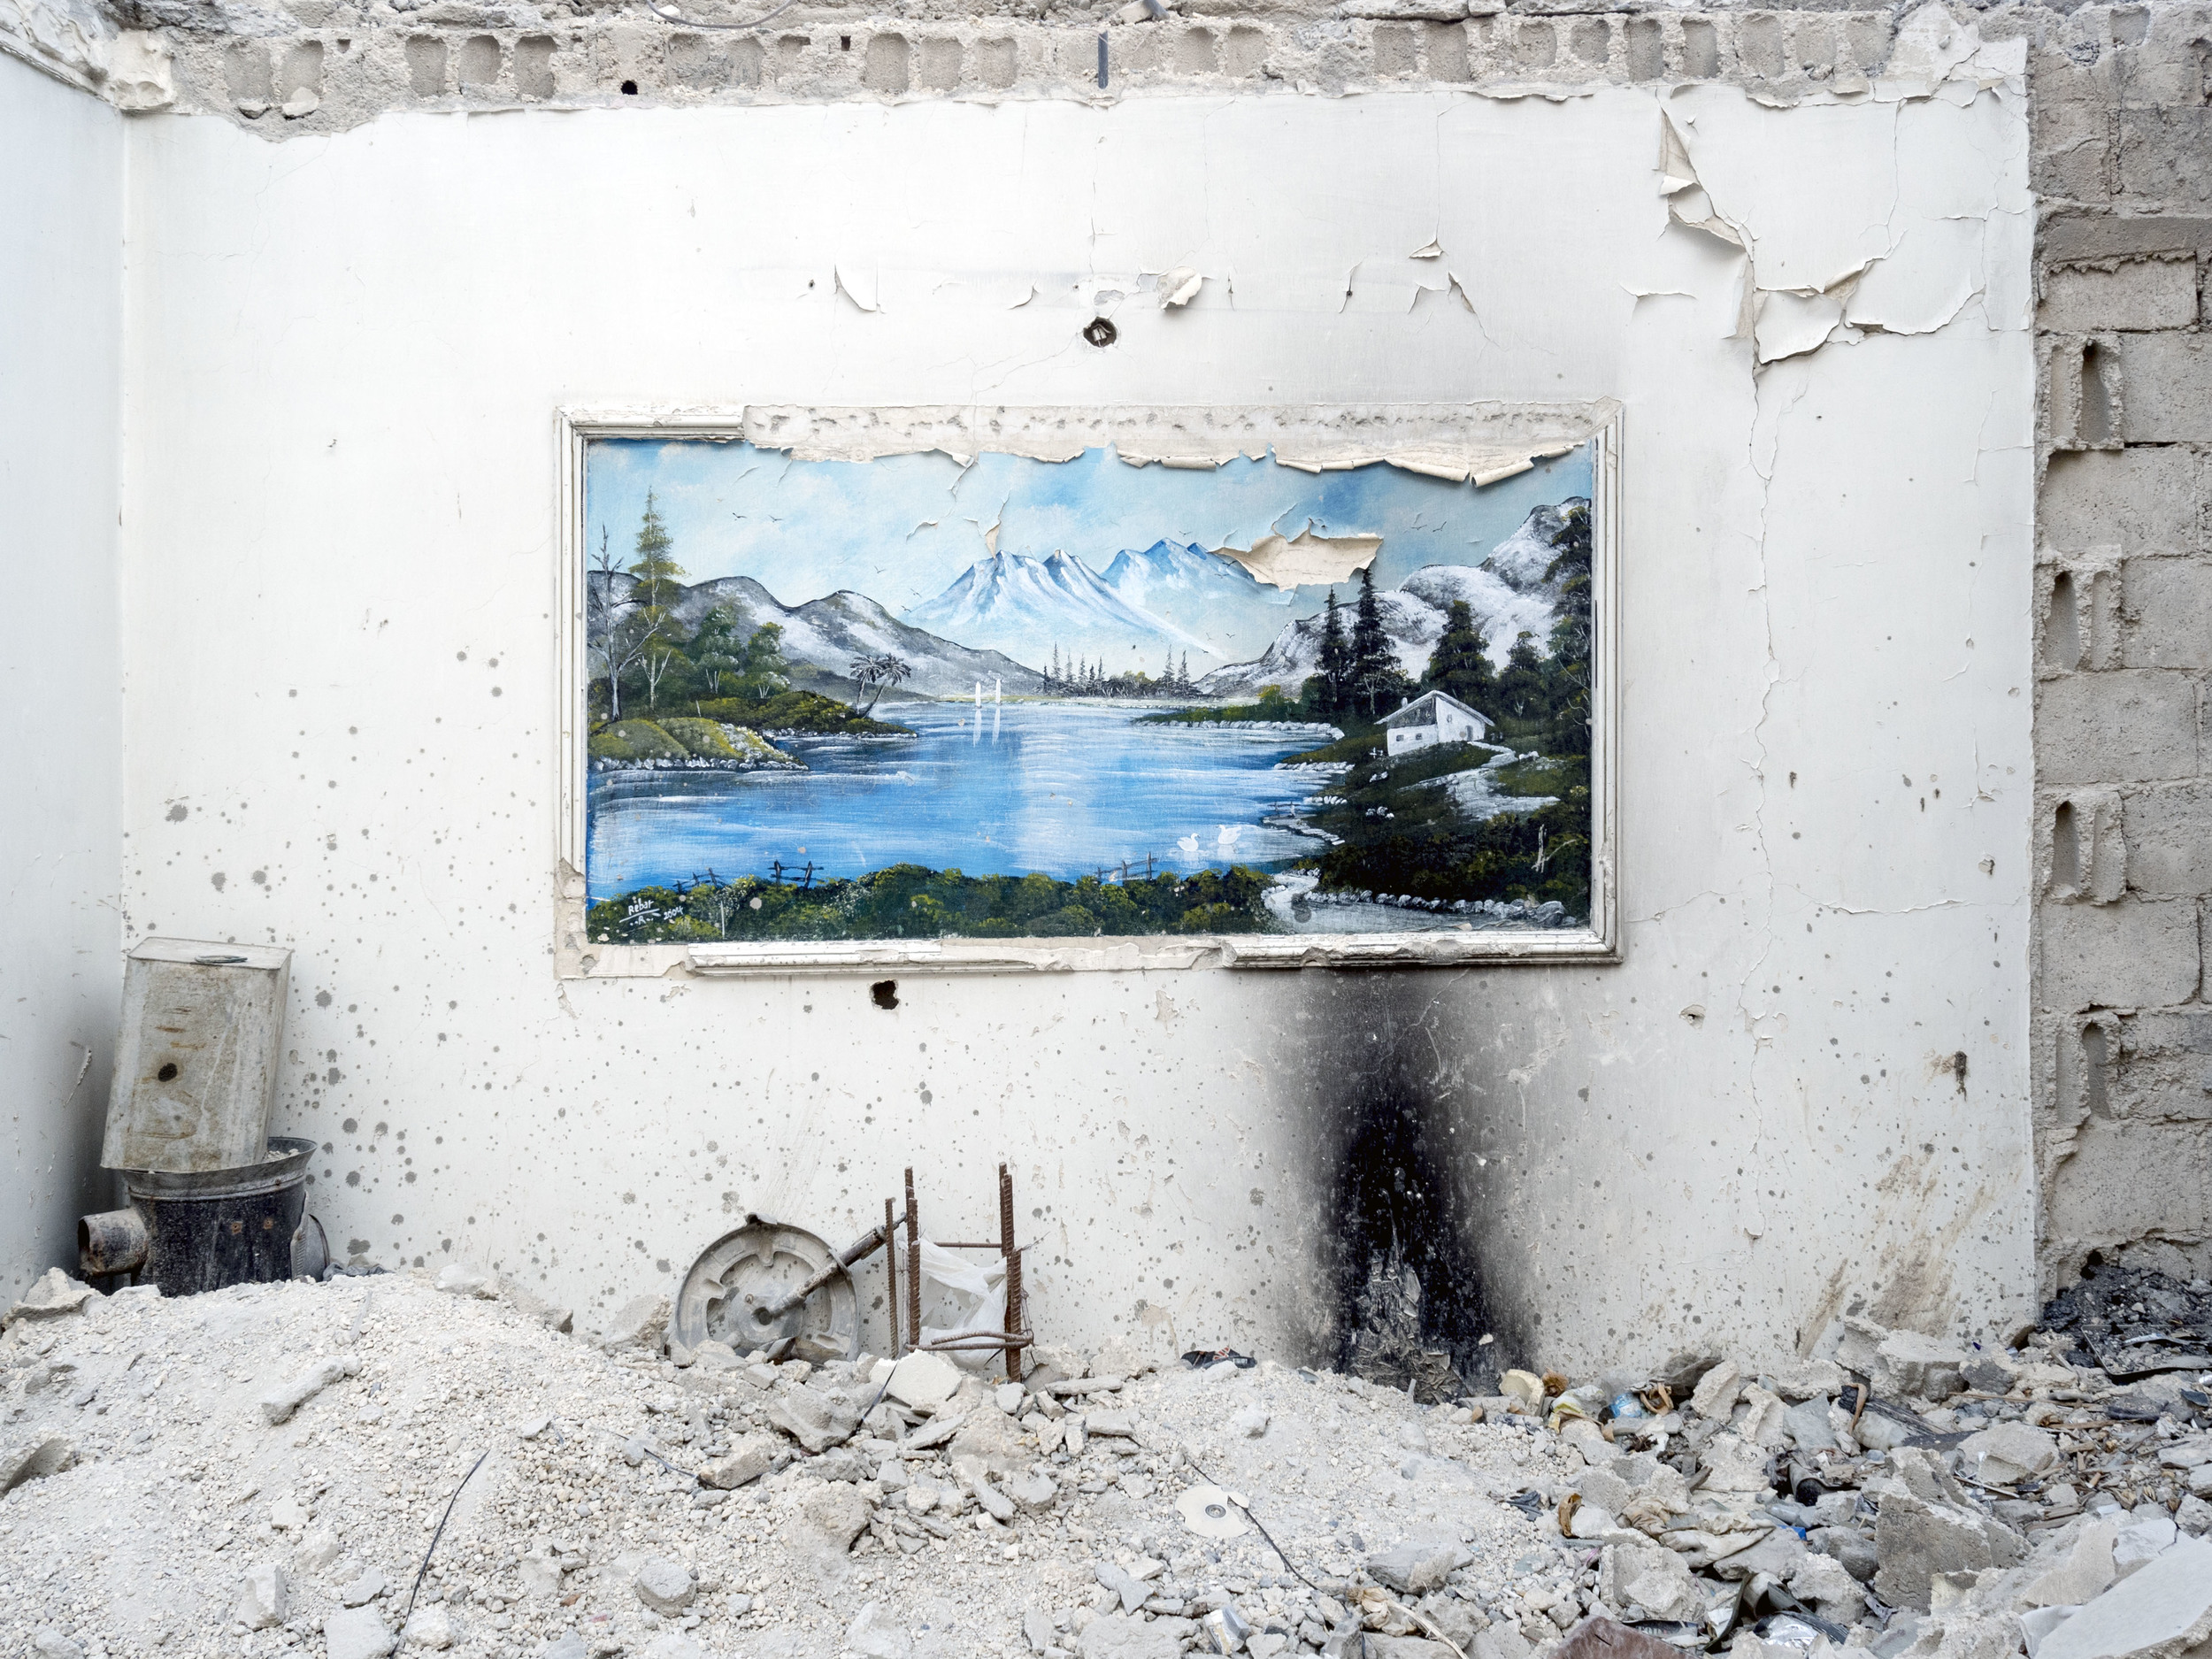 Image above: ©Lorenzo Meloni, SYRIA. Kobani / Kobane (Arabic: Ayn al Arab) . 09 August 2015. A painting inside a destroyed building / Courtesy of Magnum Photos